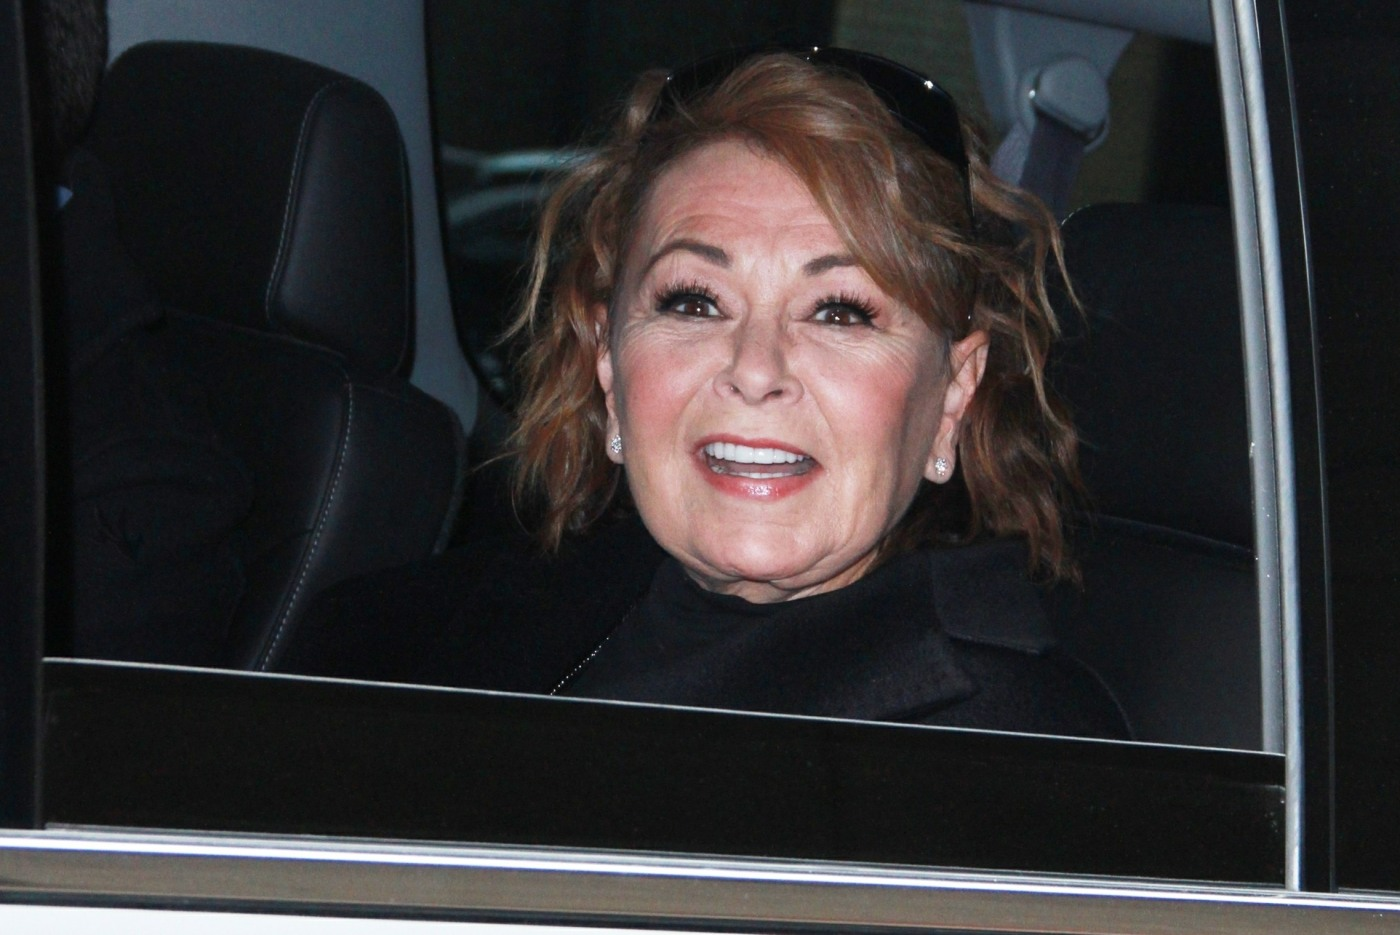 Roseanne Barr promotes the new season of 'Roseanne' at The Wendy Williams Show